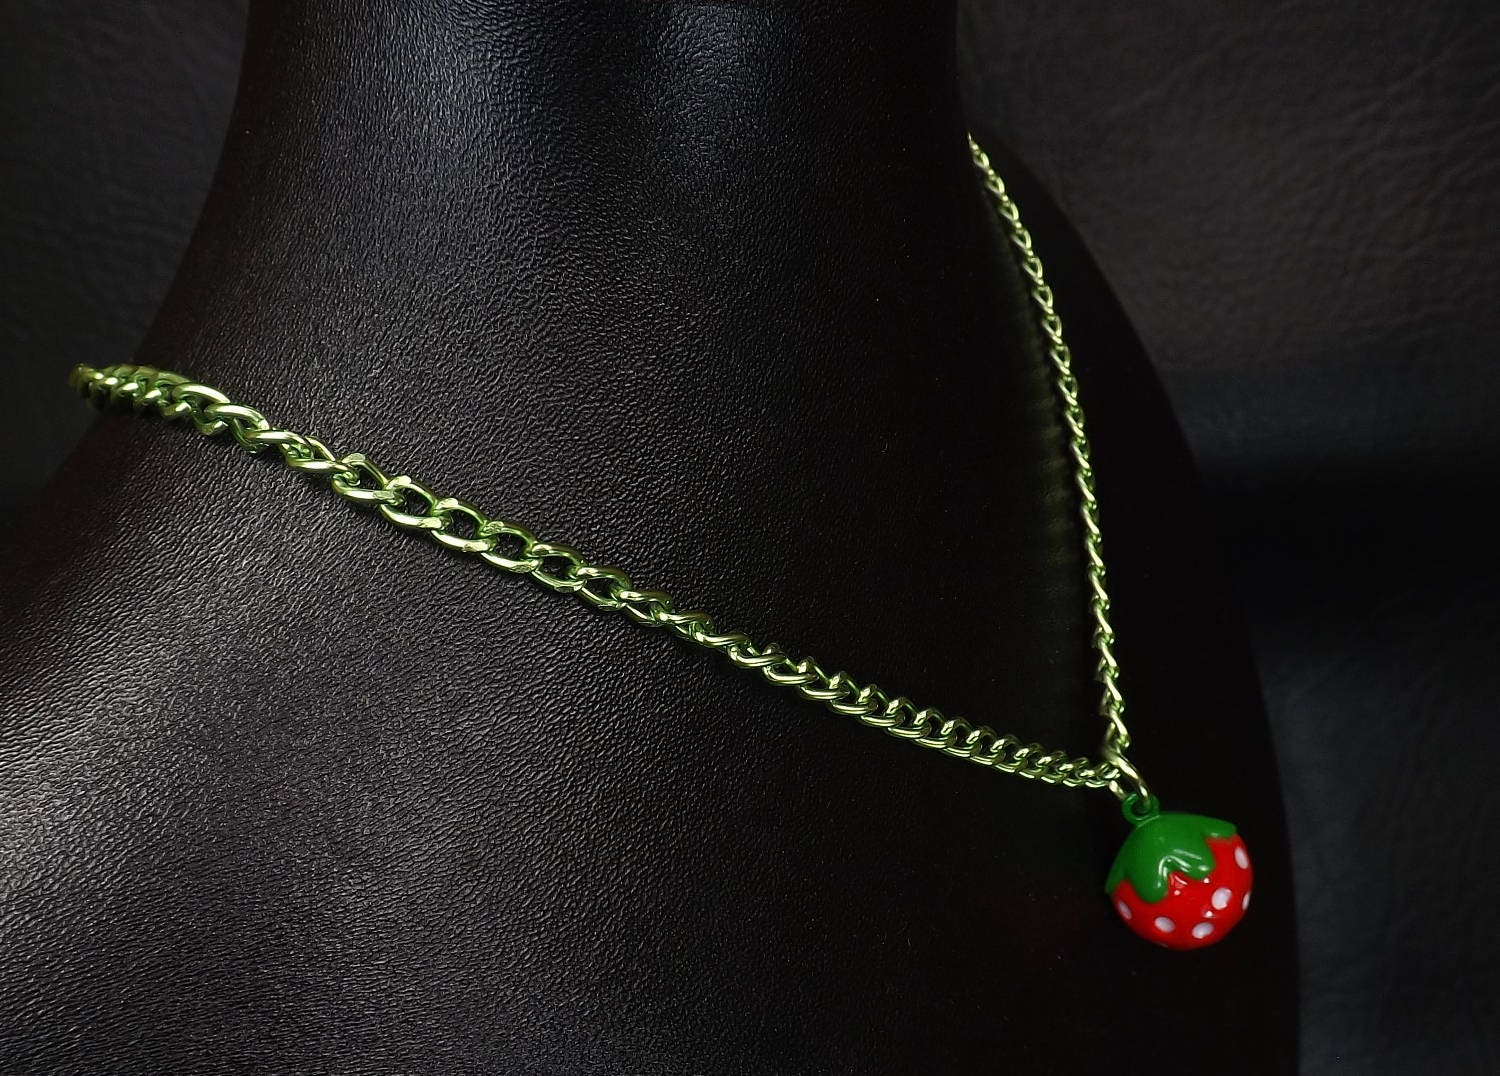 Bell Day collar discreet babygirl bdsm jewelry strawberry bell necklace kitten play jewelry ddlg gift - product images  of